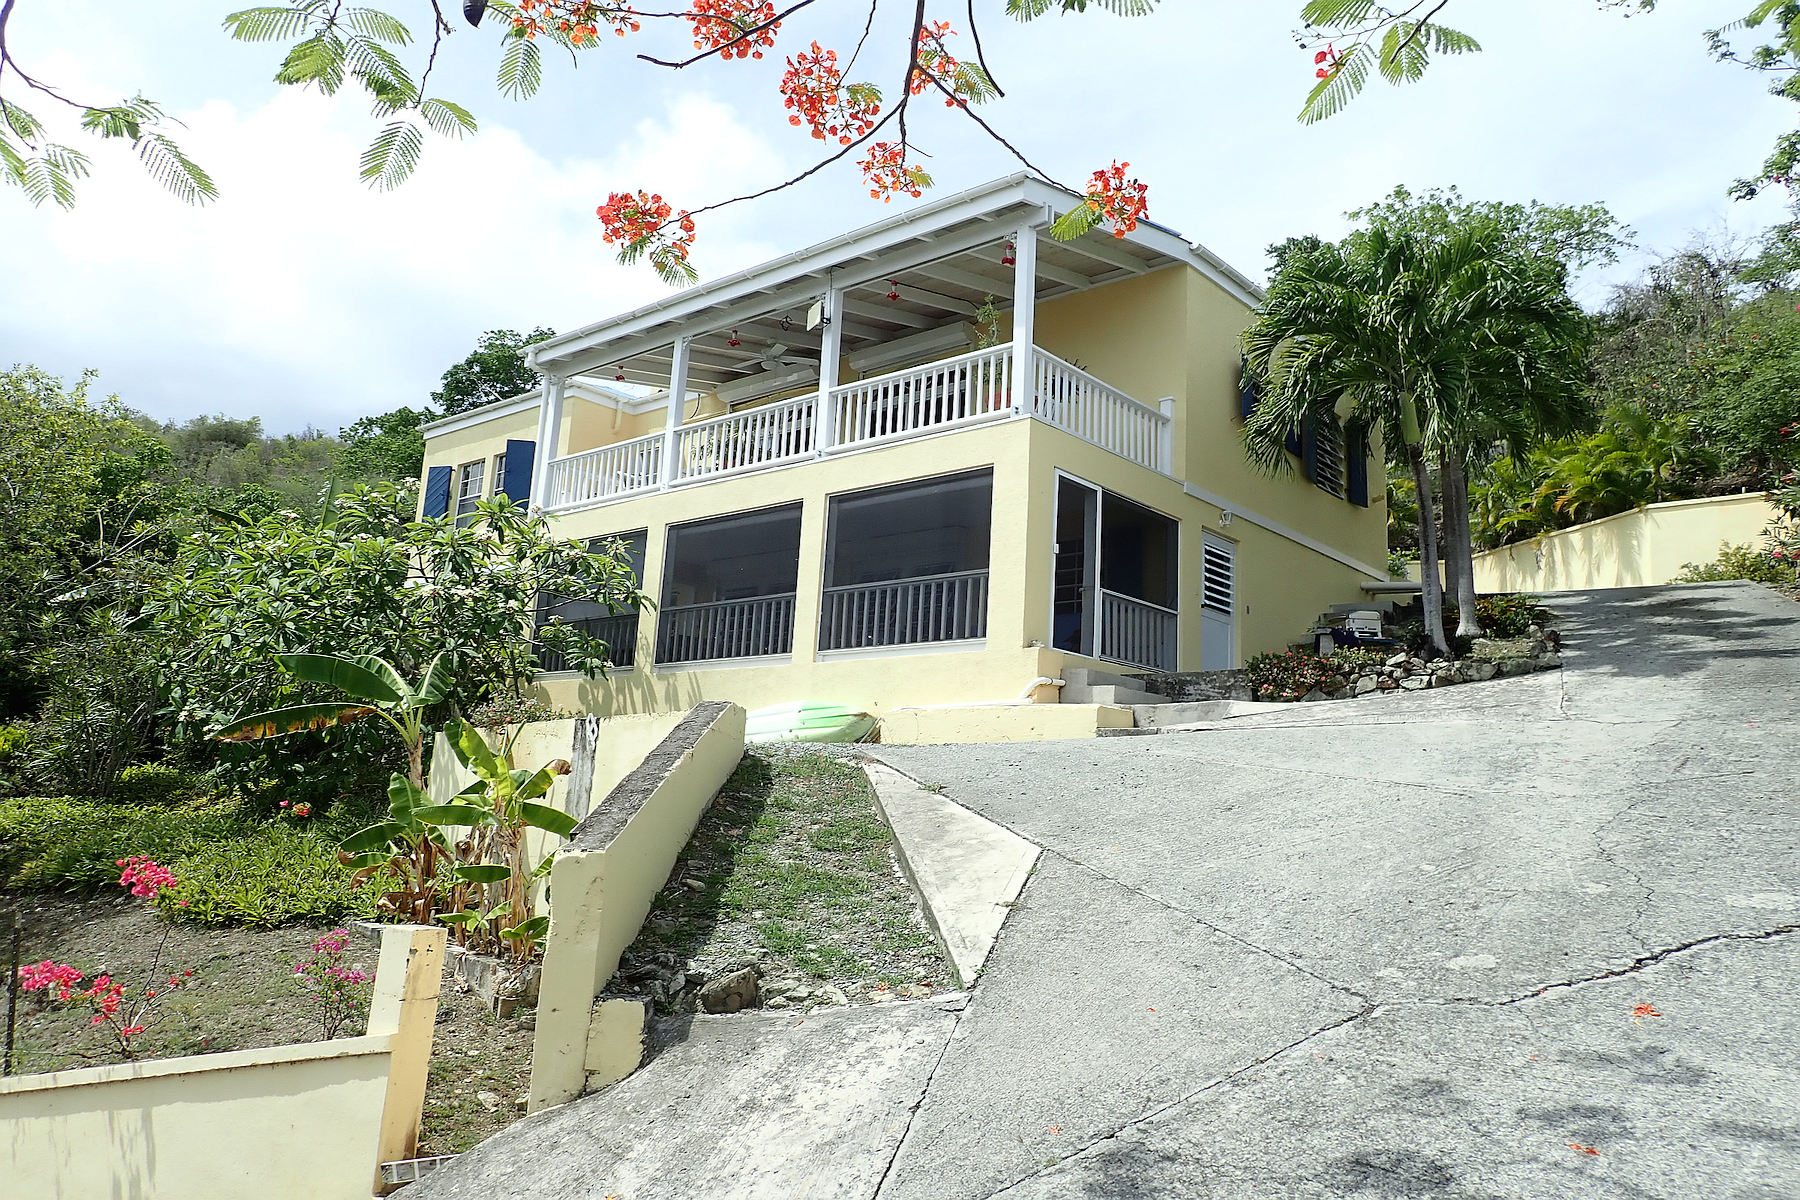 Multi-Family Homes for Sale at Hummingbird Pastory View 3-7 Remainder Pastory St John, Virgin Islands 00830 United States Virgin Islands